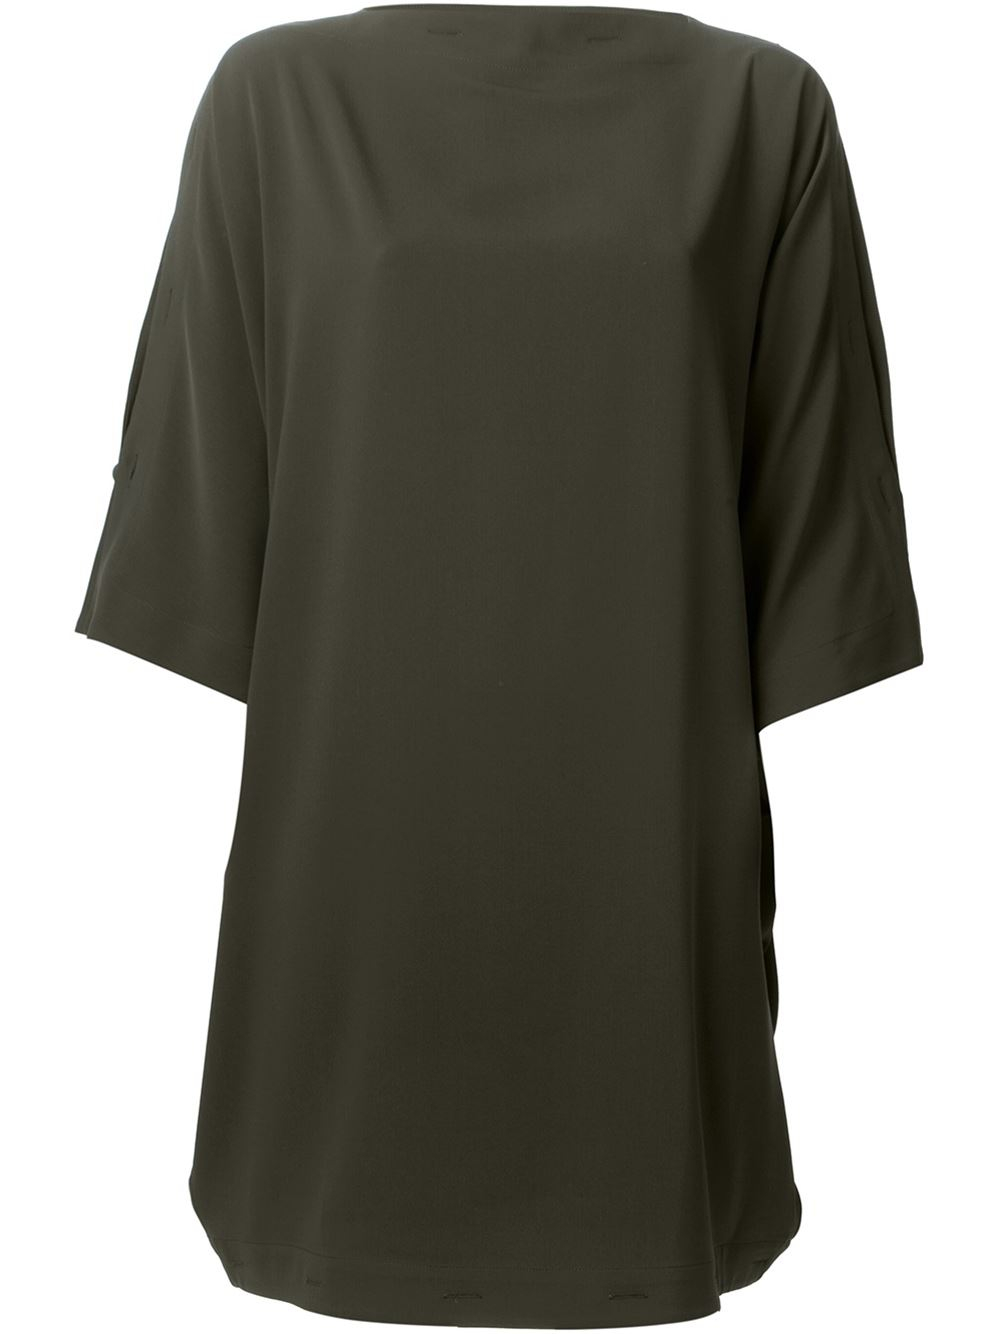 Mm6 by maison martin margiela button detail dress in green for Mm6 maison margiela